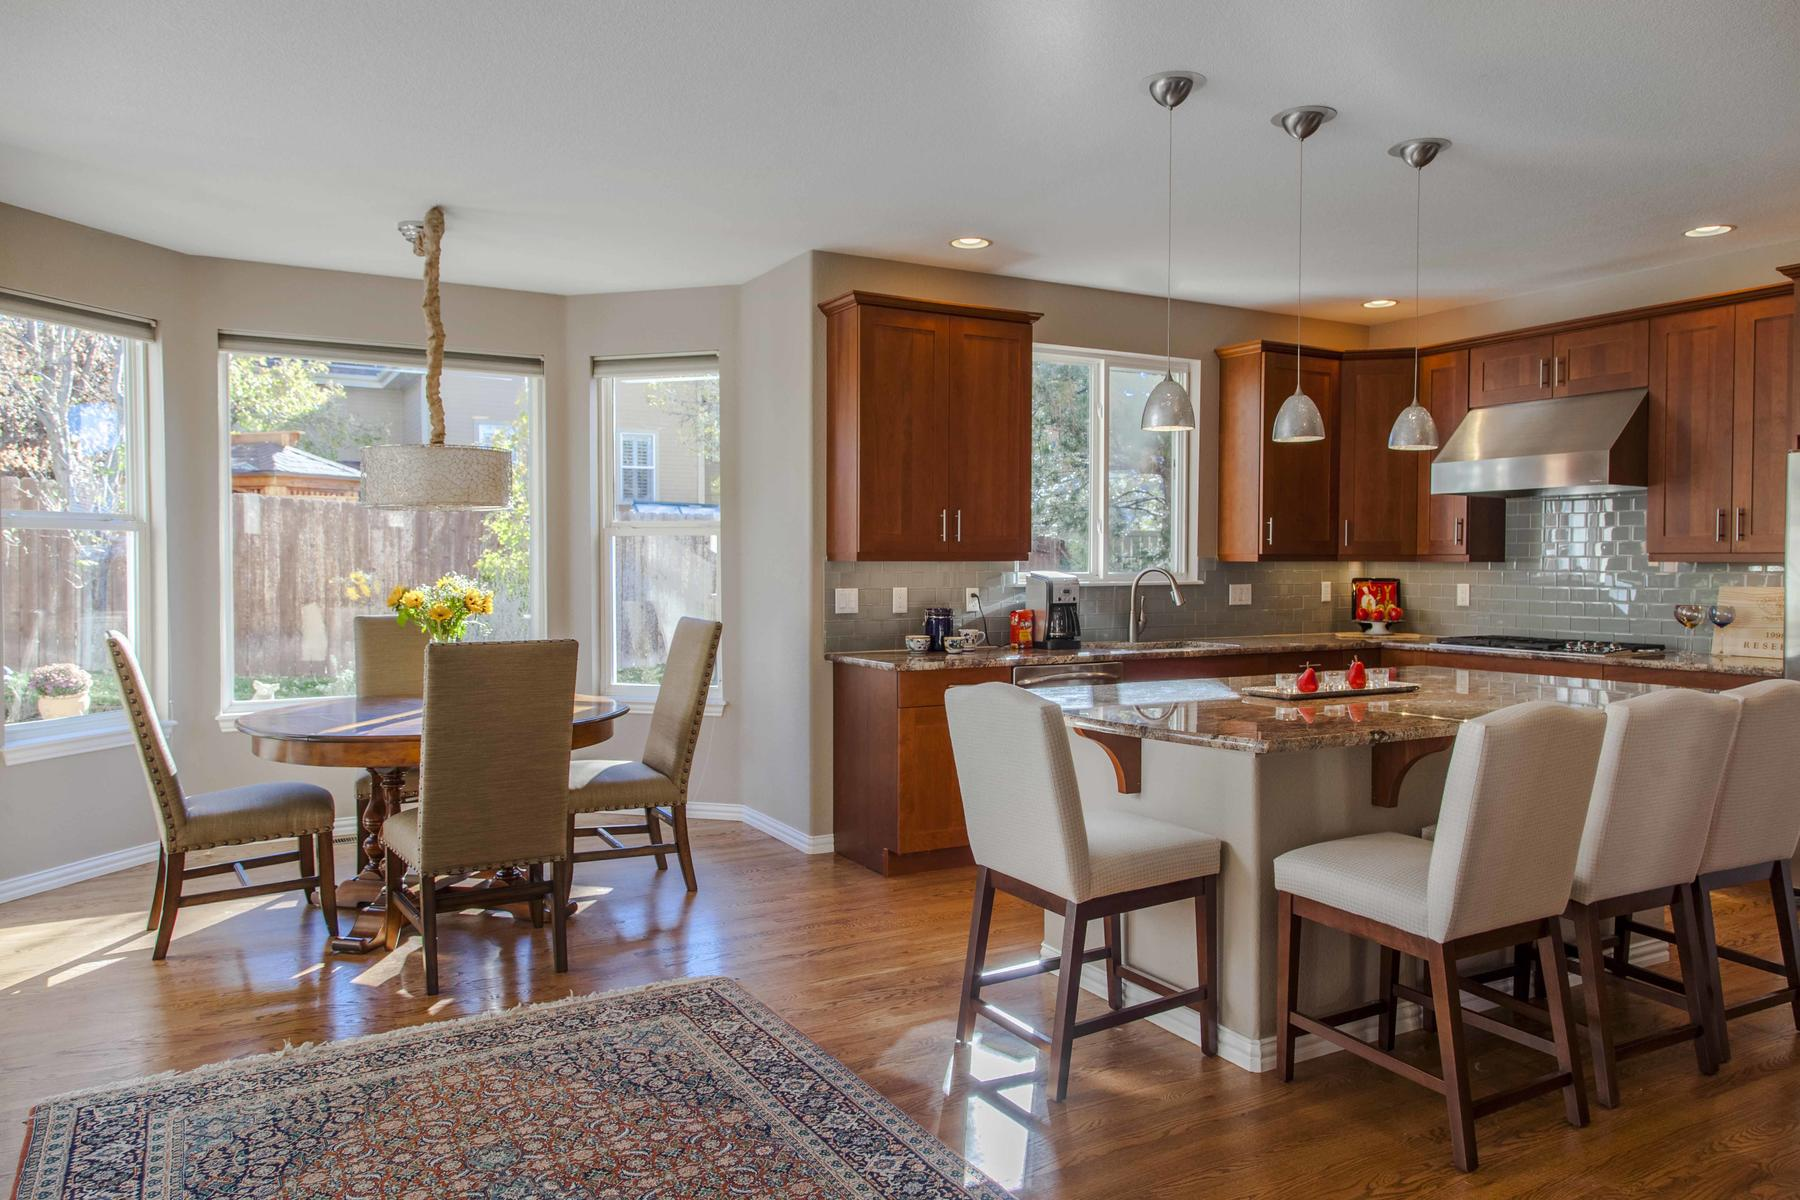 Additional photo for property listing at Immaculate Two-Story Home In Fox Hollow Village 2980 S Newcombe Way Lakewood, Colorado 80227 United States